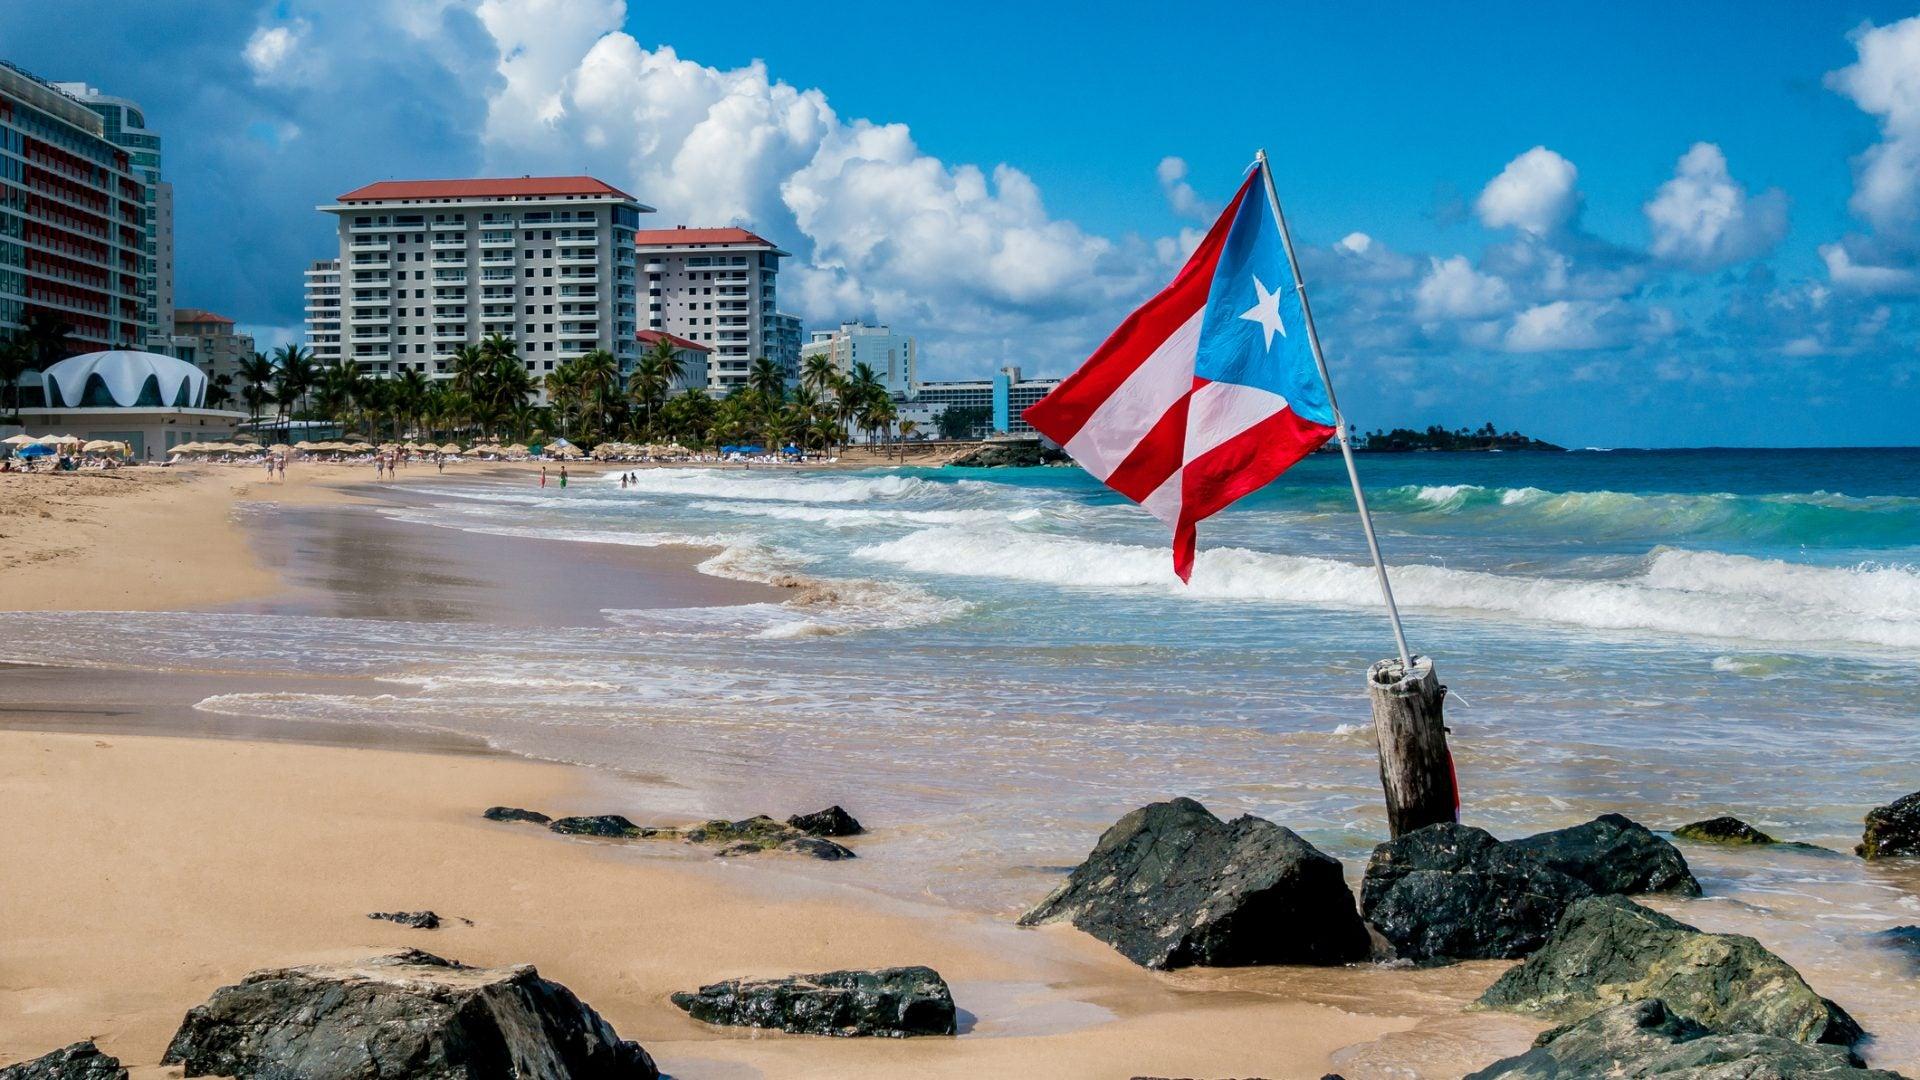 Wish You Were Still Traveling? You Can Take A Virtual Vacation To Puerto Rico This Weekend